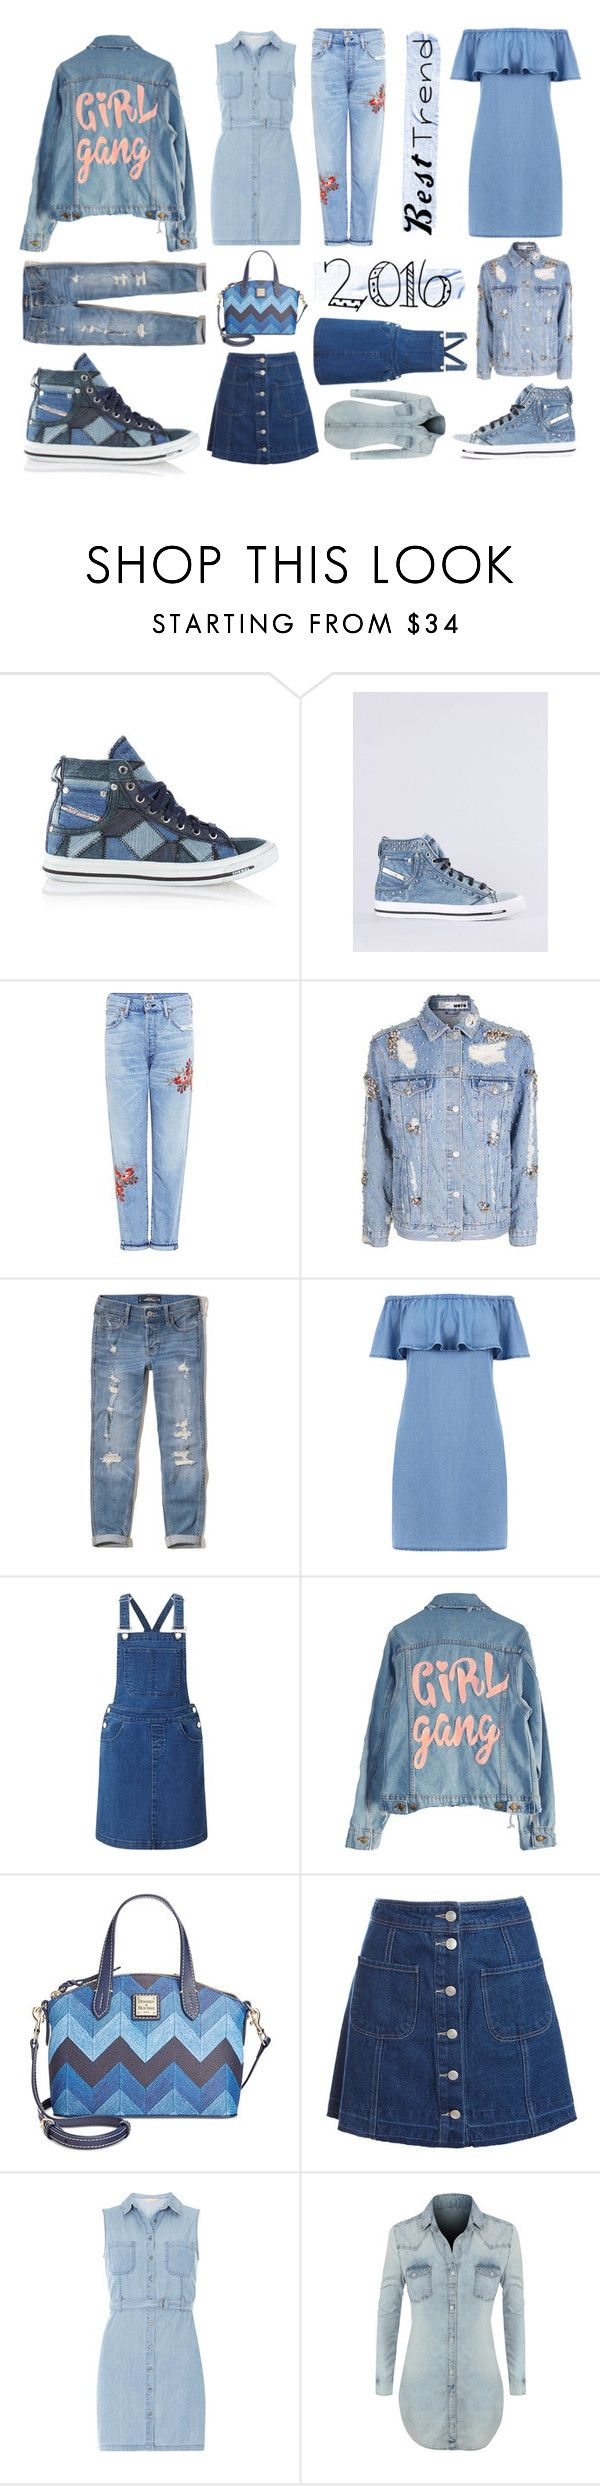 """denim rocks🤘🏻"" by leticiax ❤ liked on Polyvore featuring Diesel, Citizens of Humanity, Hollister Co., Warehouse, Miss Selfridge, High Heels Suicide, Dooney & Bourke, Sans Souci, Dorothy Perkins and LE3NO"